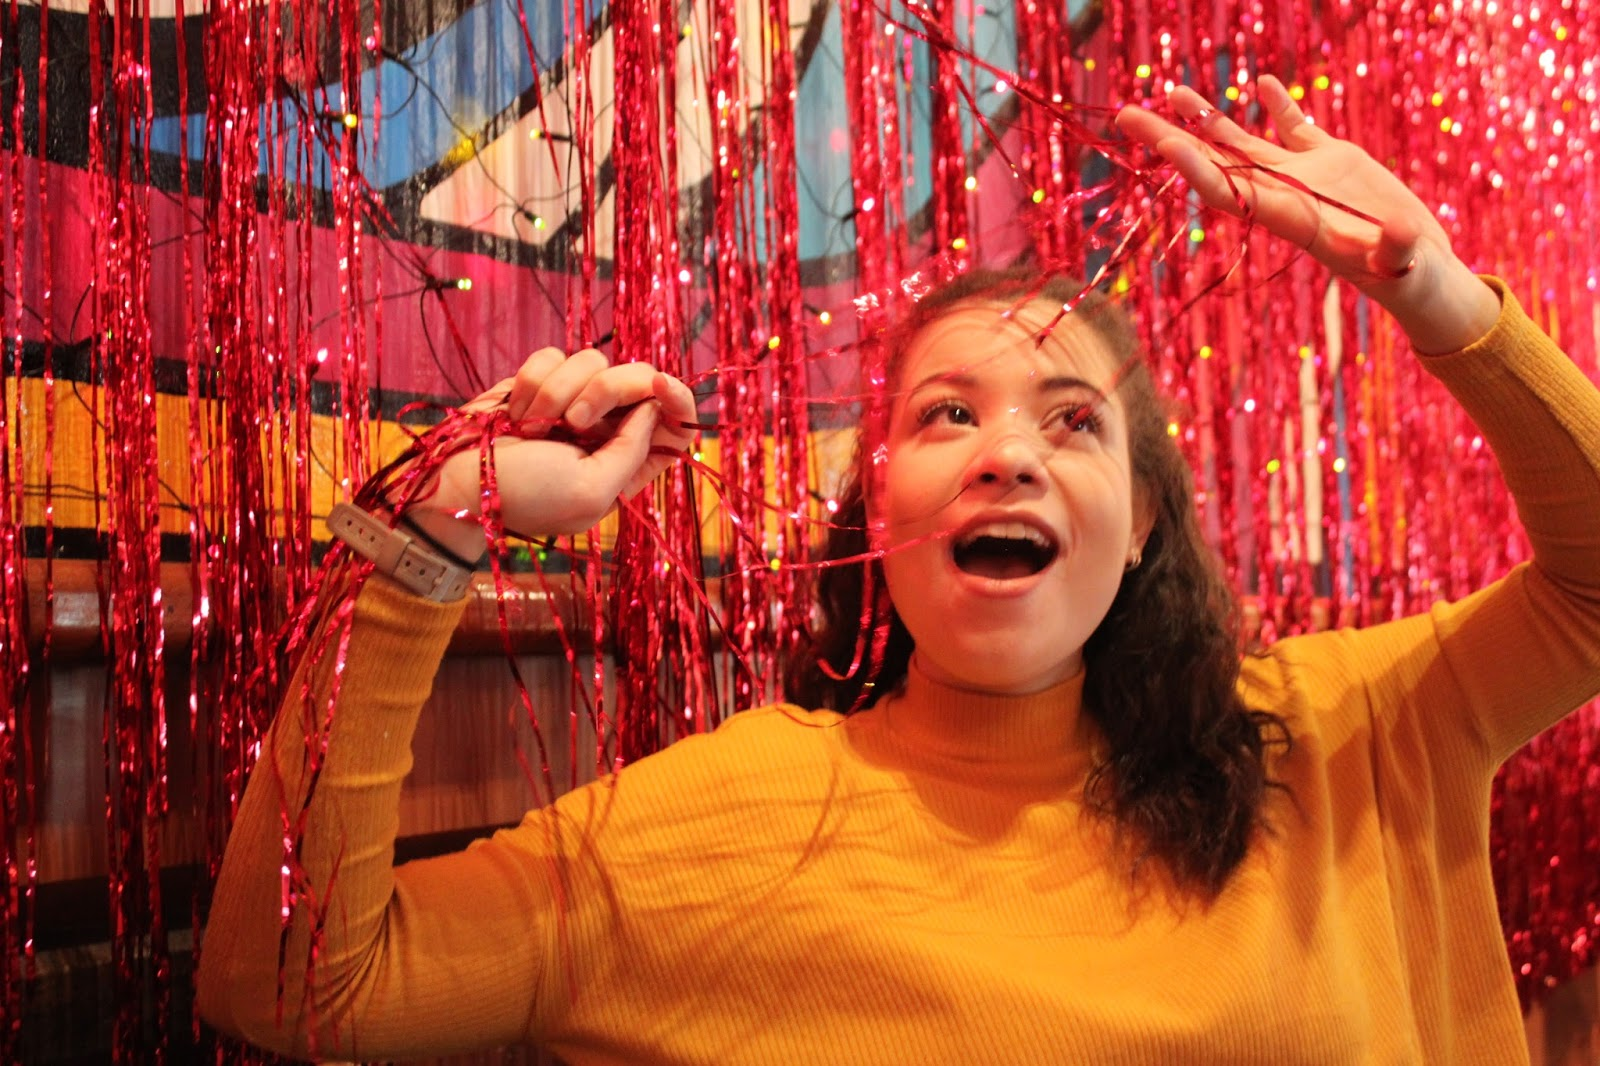 Eboni being silly with the Cafe Schuim wall tinsel in Amsterdam.